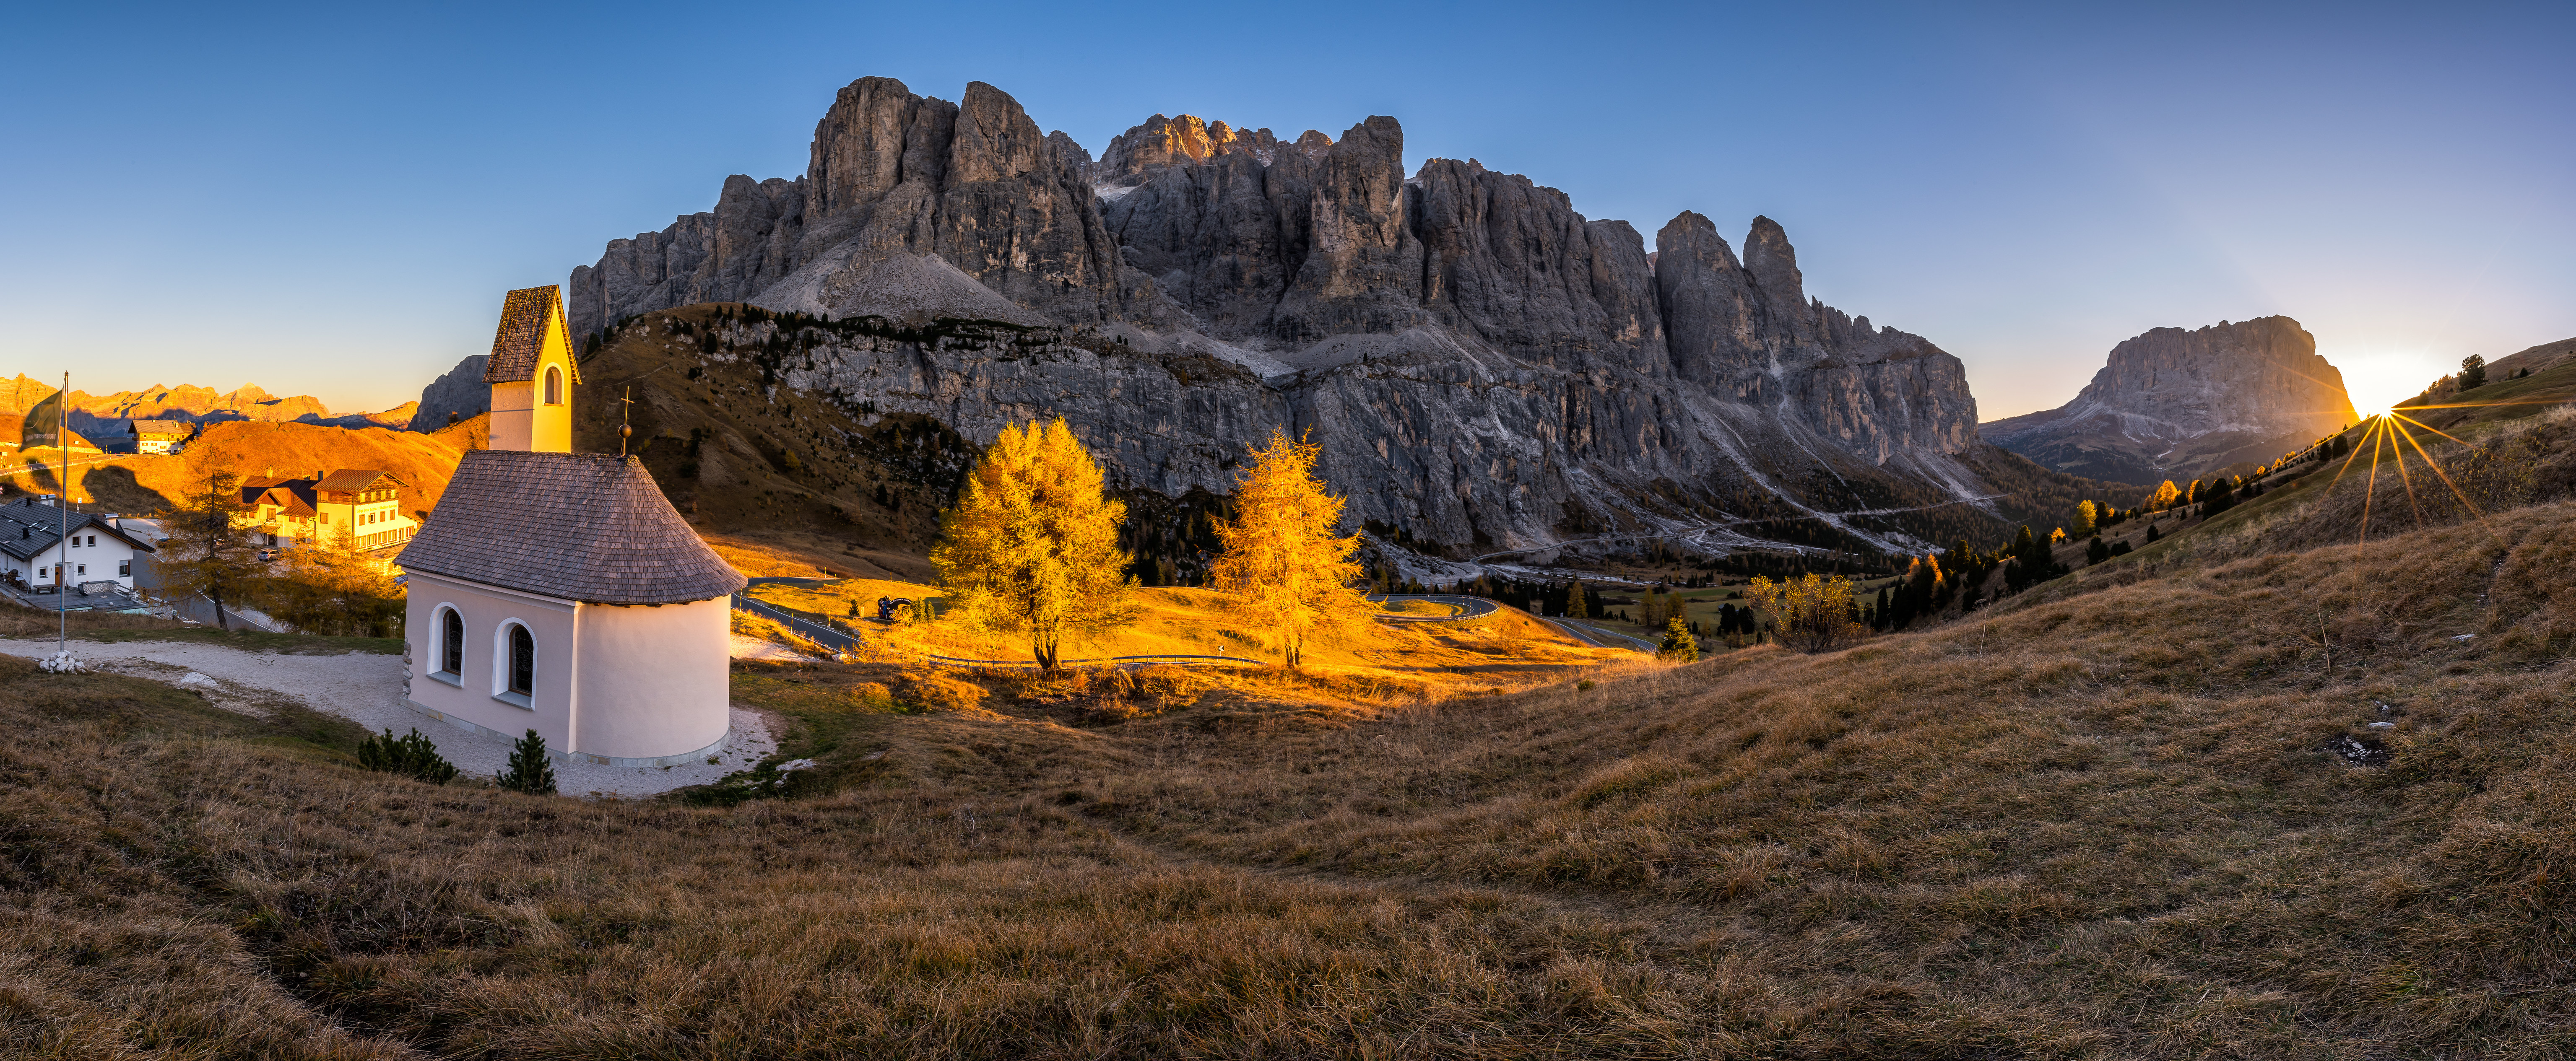 Pictures Nature Church Italy panoramic South Tyrol Alps mountain Scenery Sunrises and sunsets Panorama Mountains sunrise and sunset landscape photography